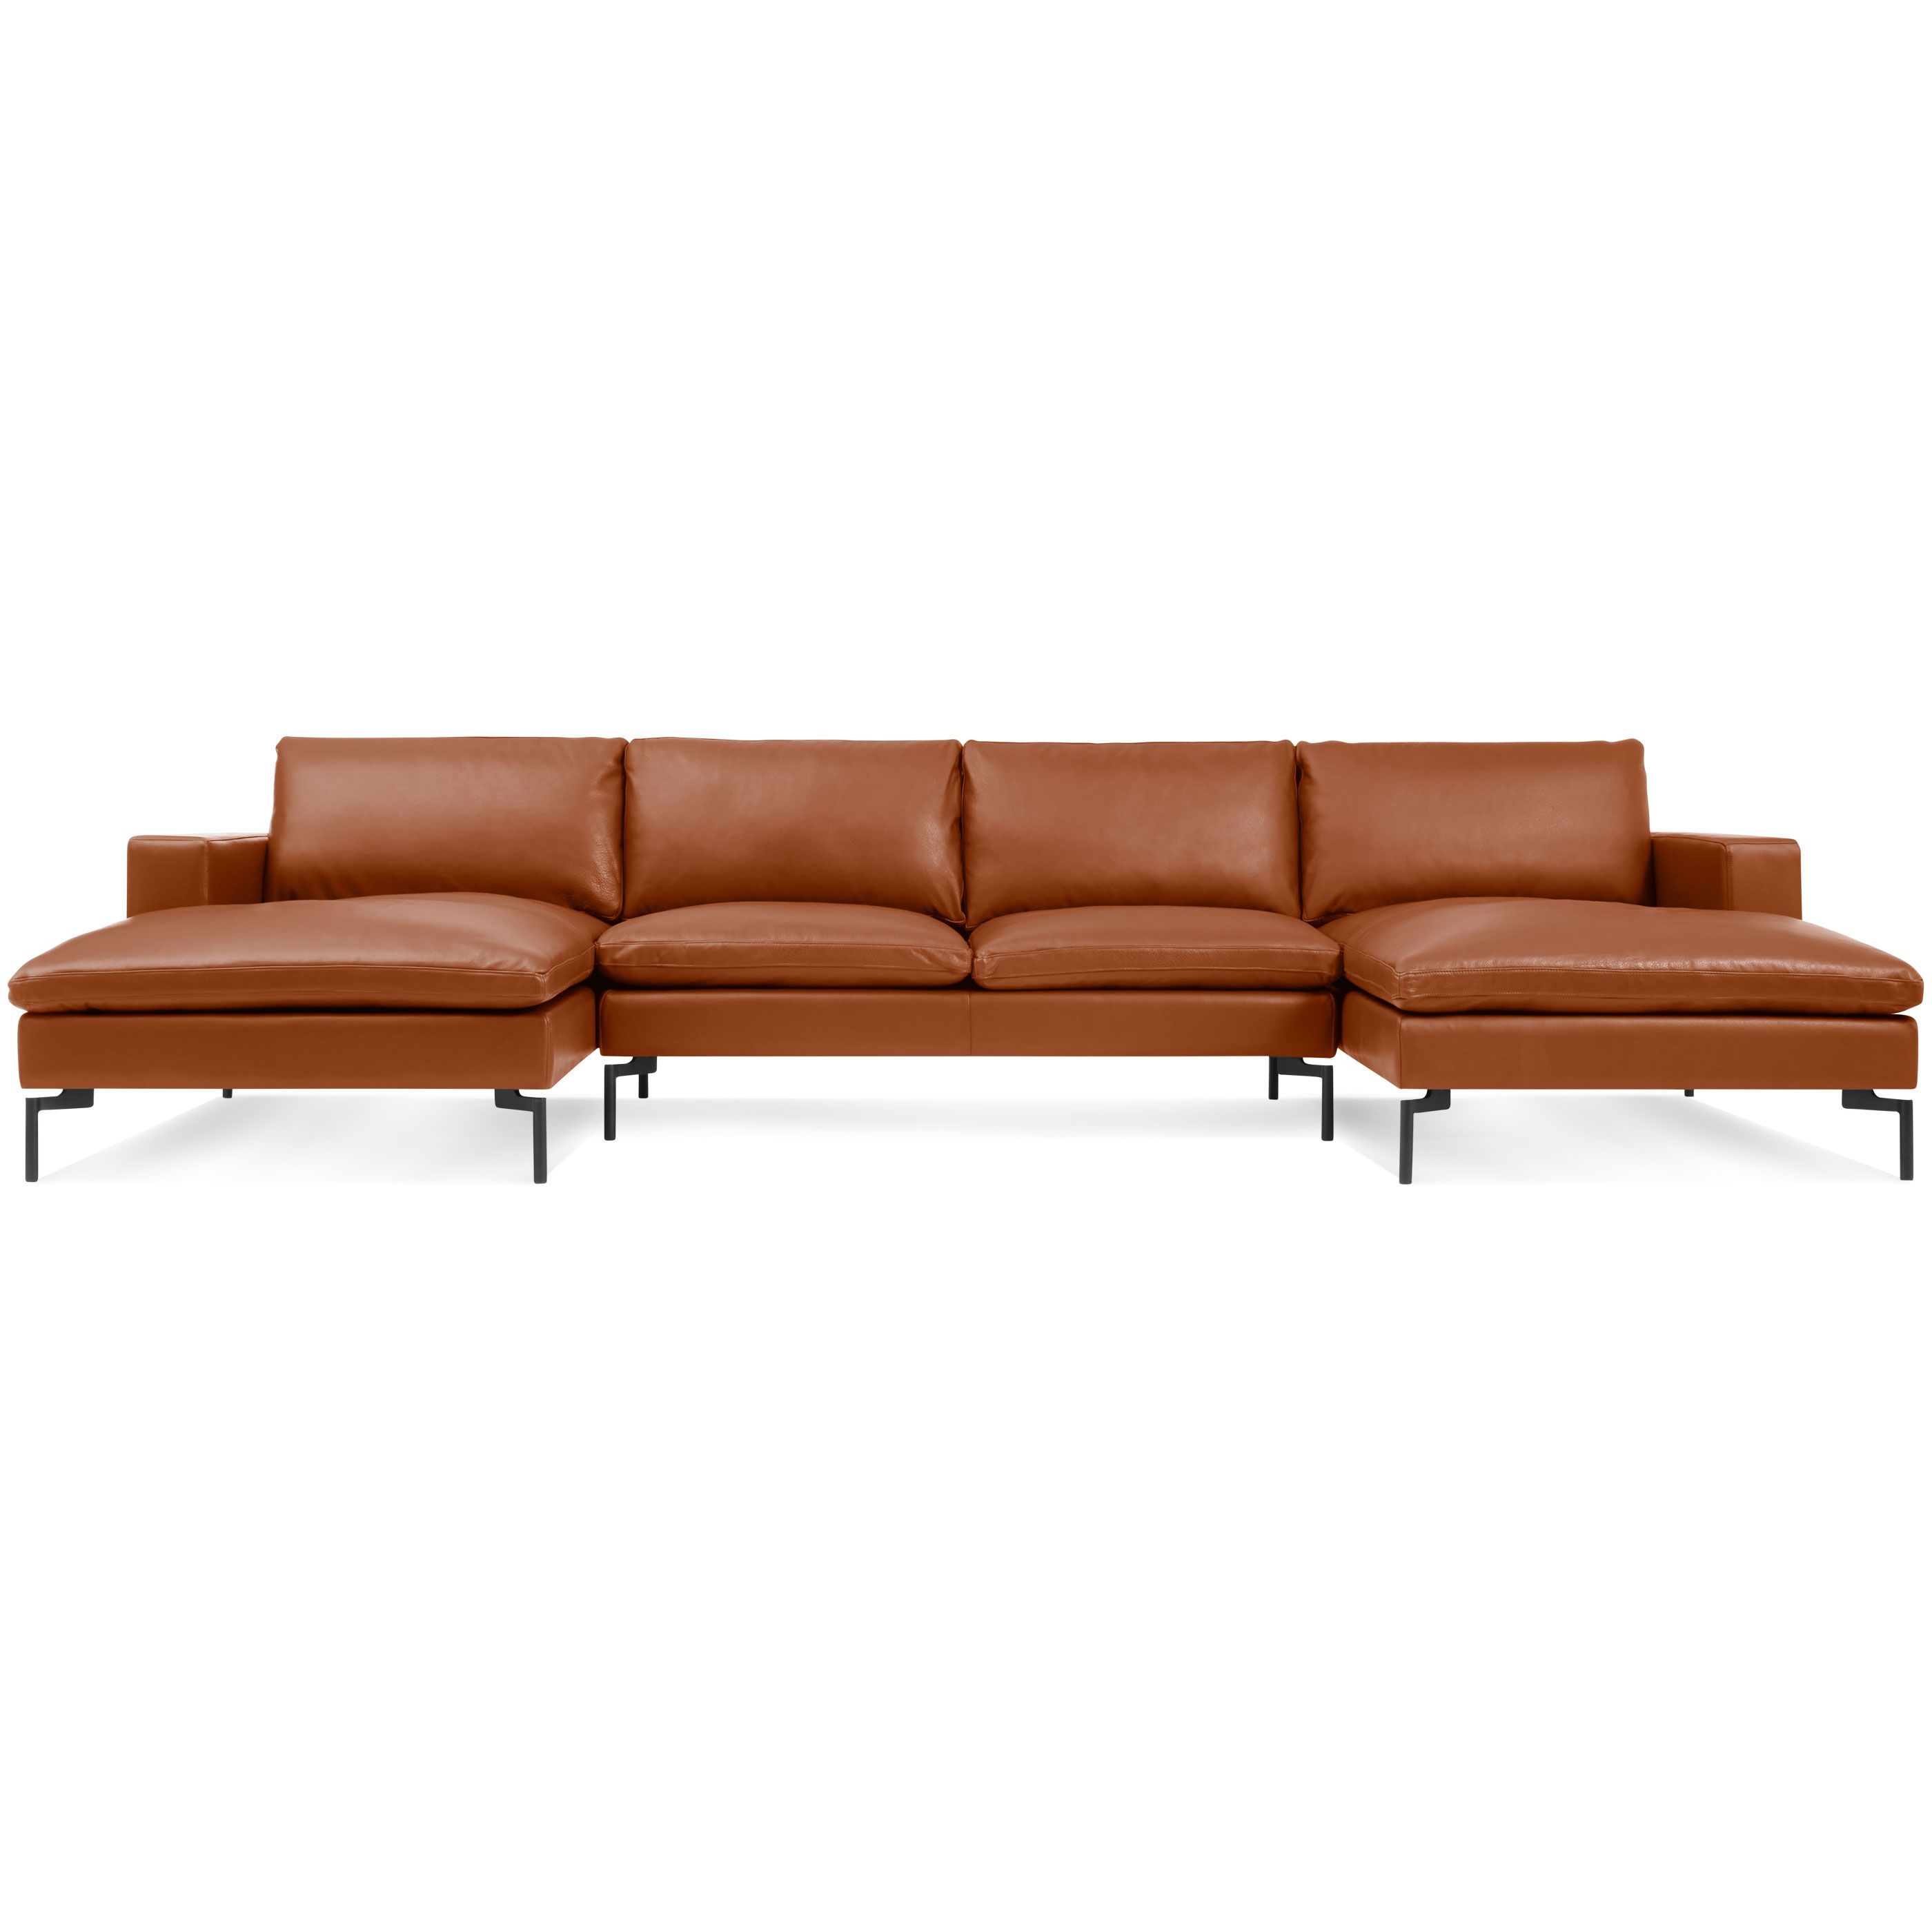 New Standard U Shaped Sectional Sofa Toffee Leather U Shaped Sectional Sofa Leather Sectional U Shaped Sectional